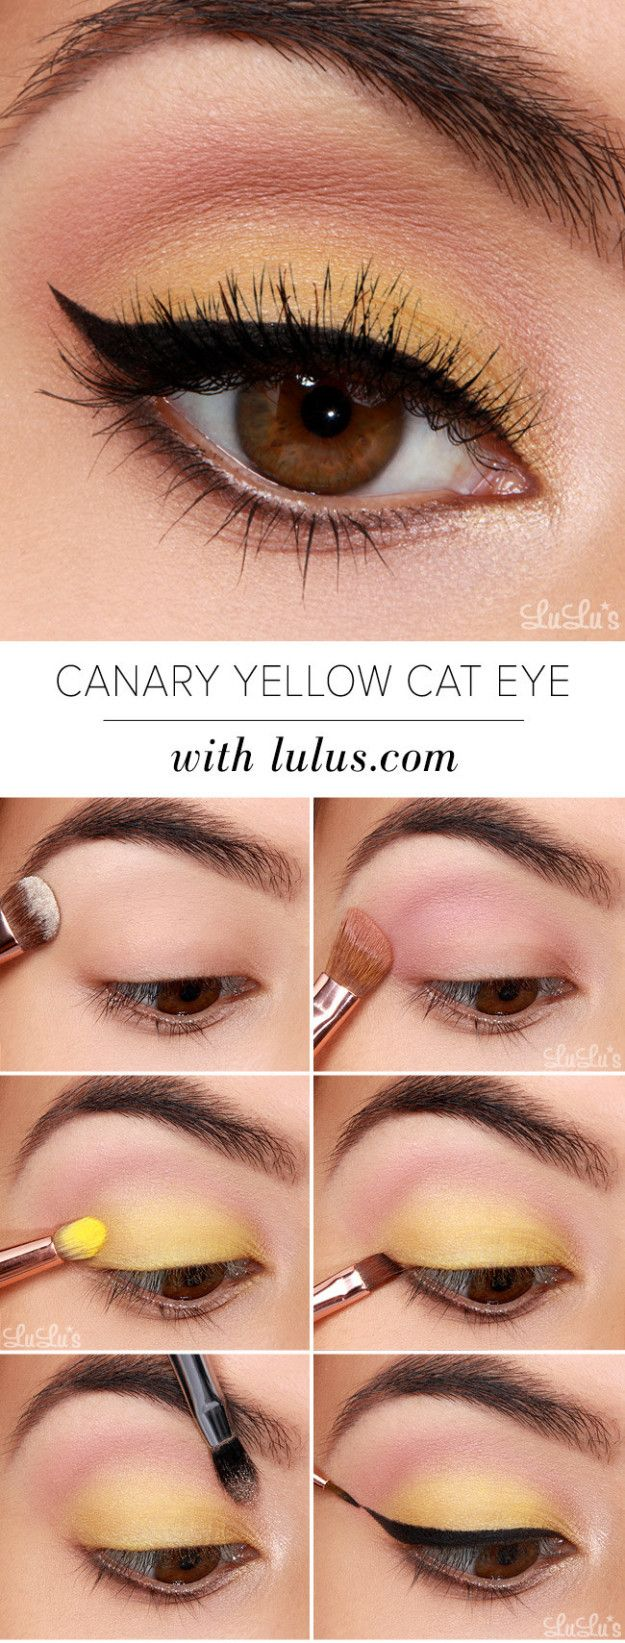 18 eye makeup cheat sheets if you dont know wtf youre doing yellow eye makeupcheat sheetsbedroom eyesfestival makeupeyeshadow